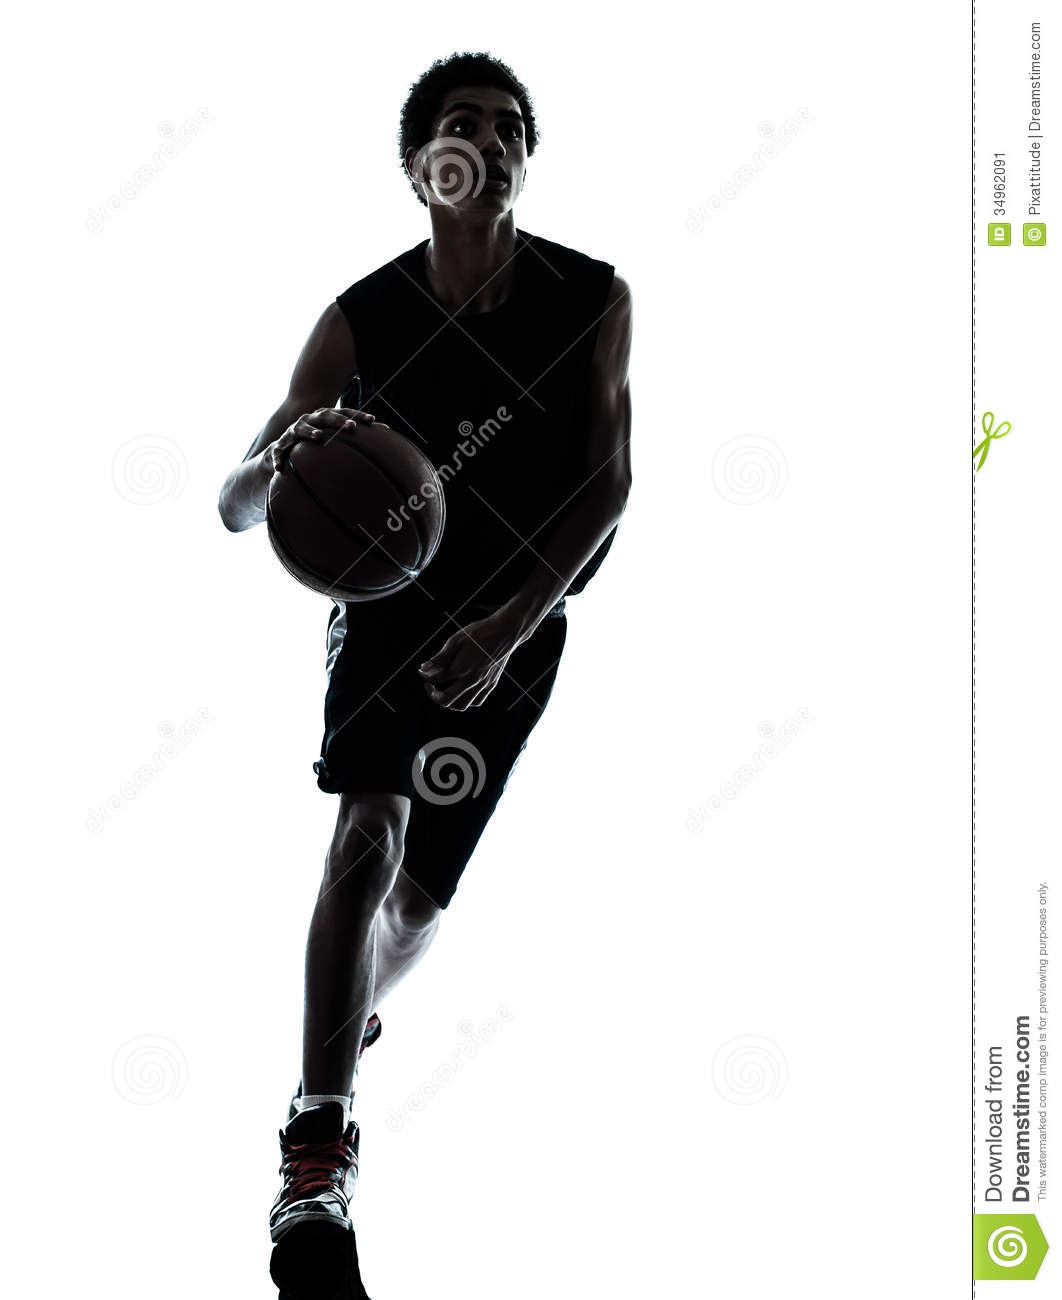 Basketball Player Dribbling Silhouette Stock Image - Image: 34962091